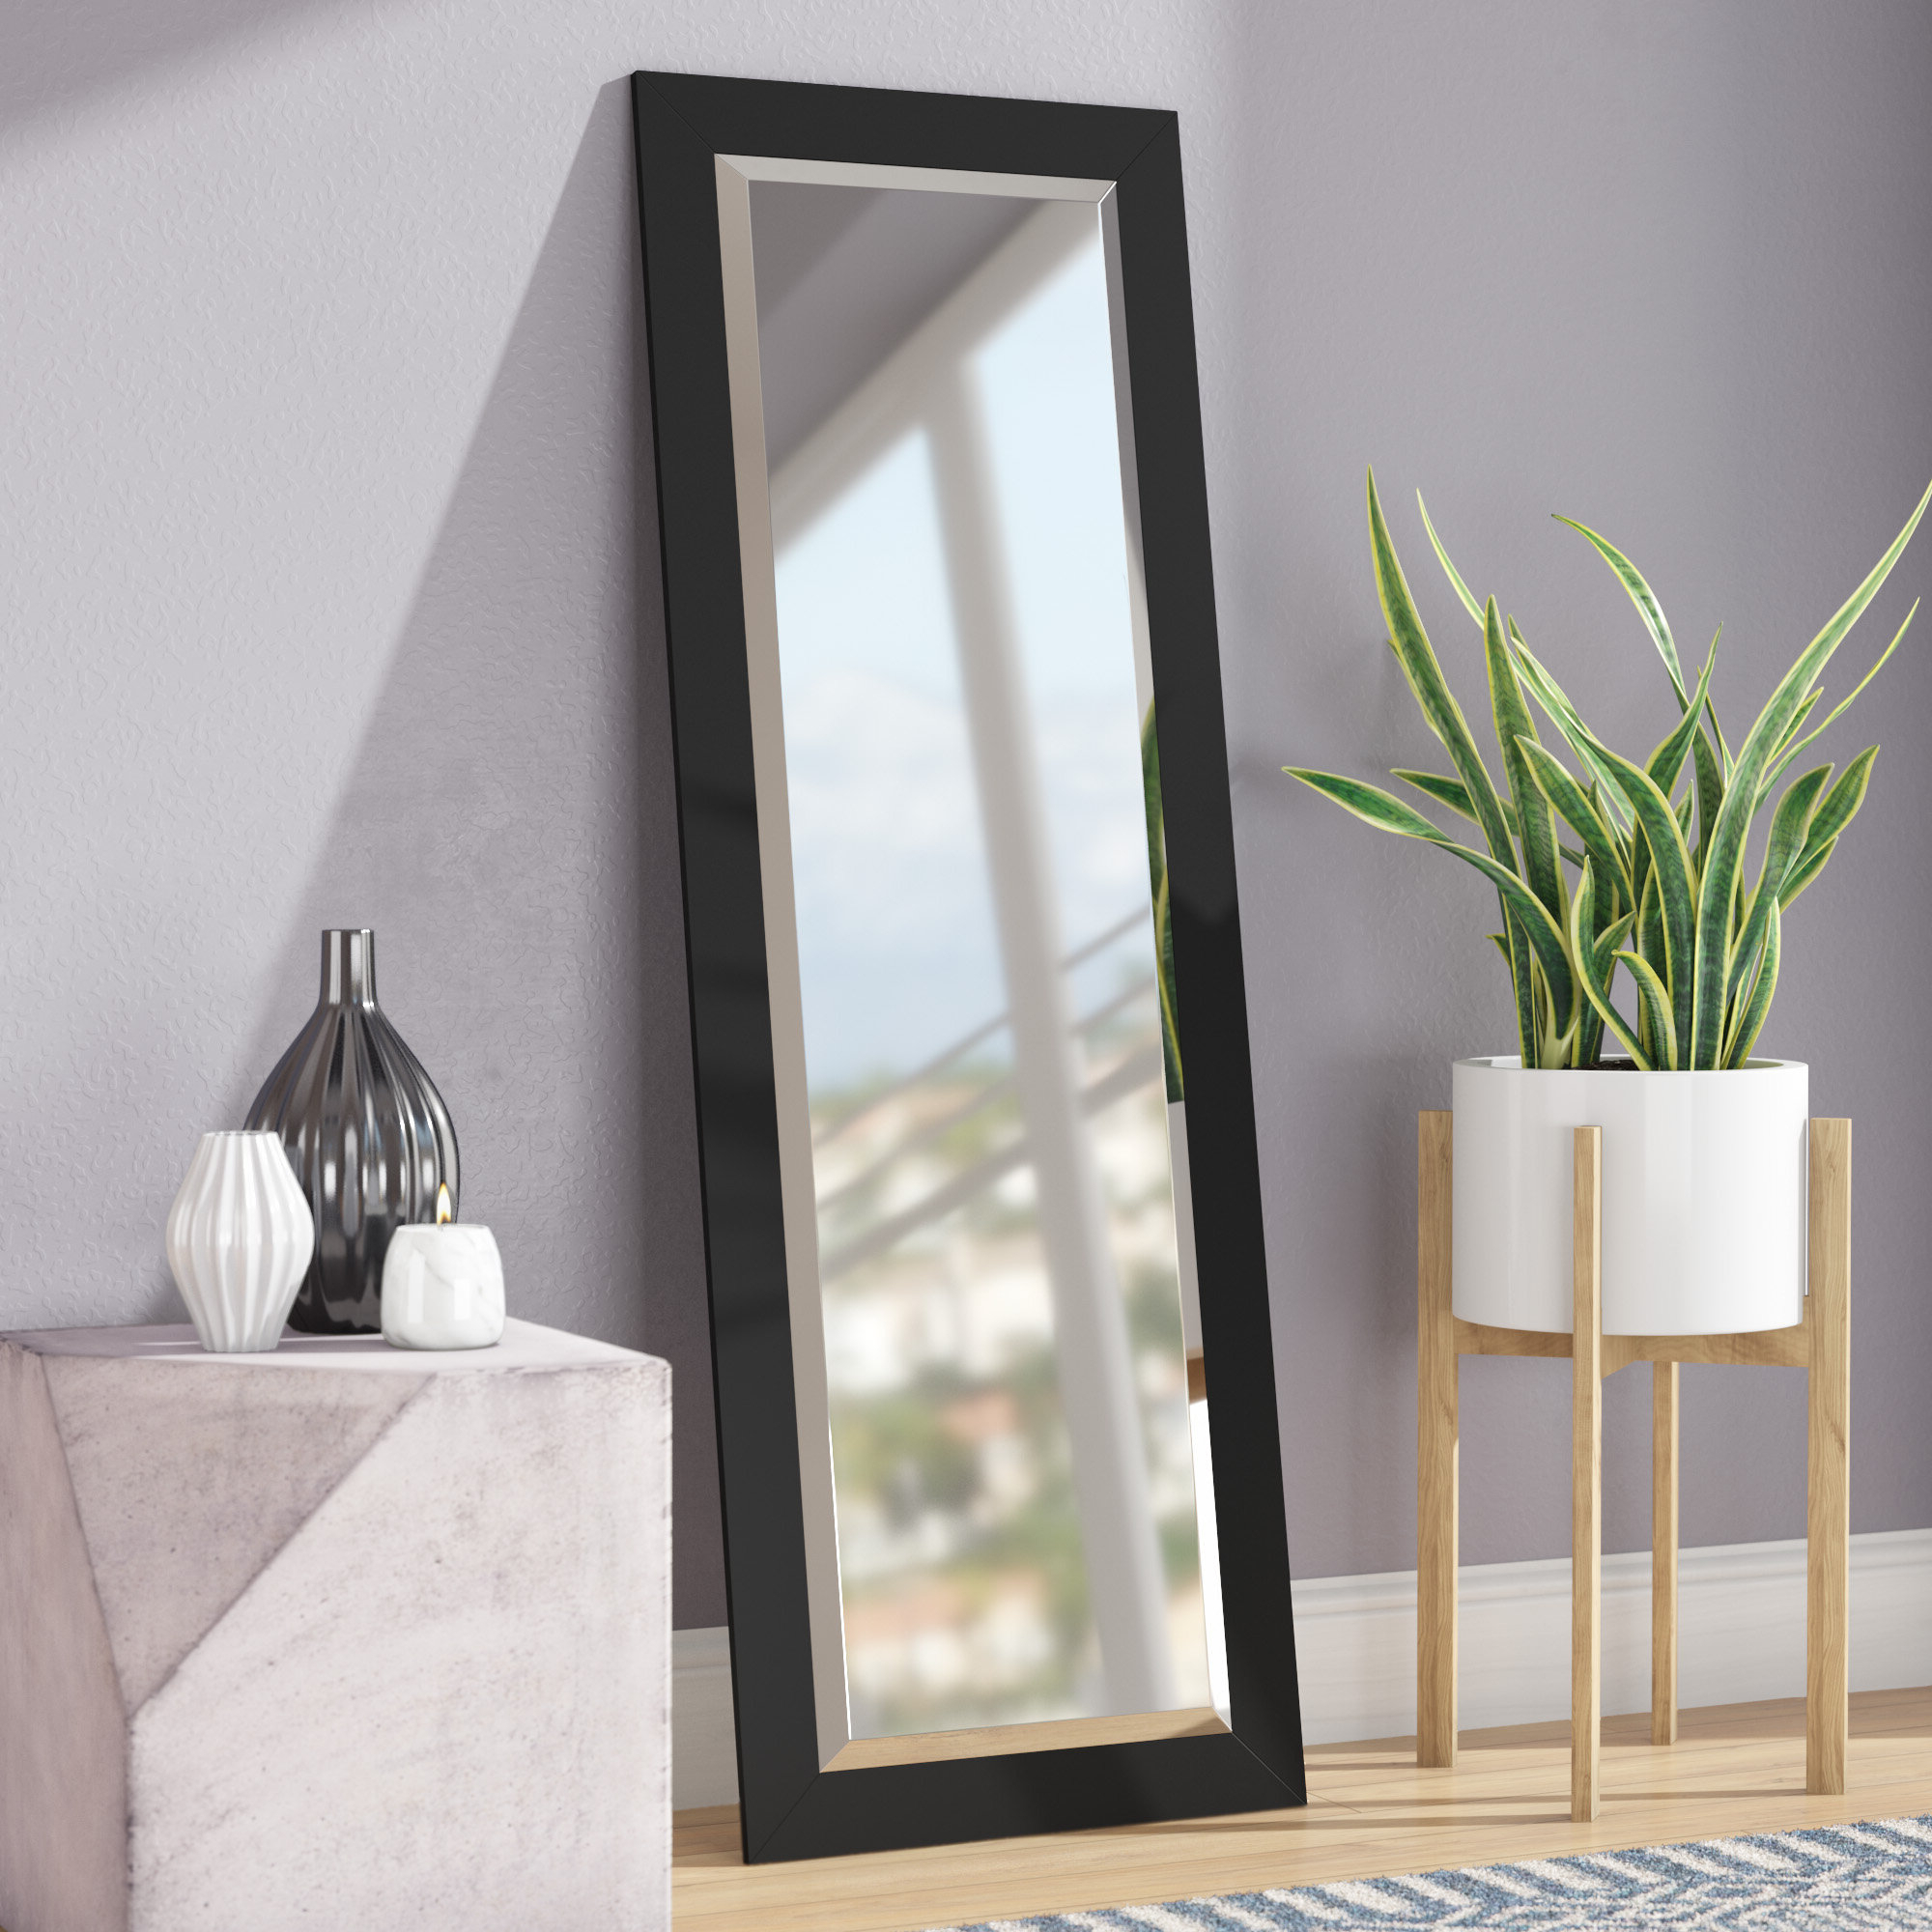 Modern & Contemporary Beveled Wall Mirrors Pertaining To Best And Newest Modern & Contemporary Beveled Wall Mirror (Gallery 10 of 20)